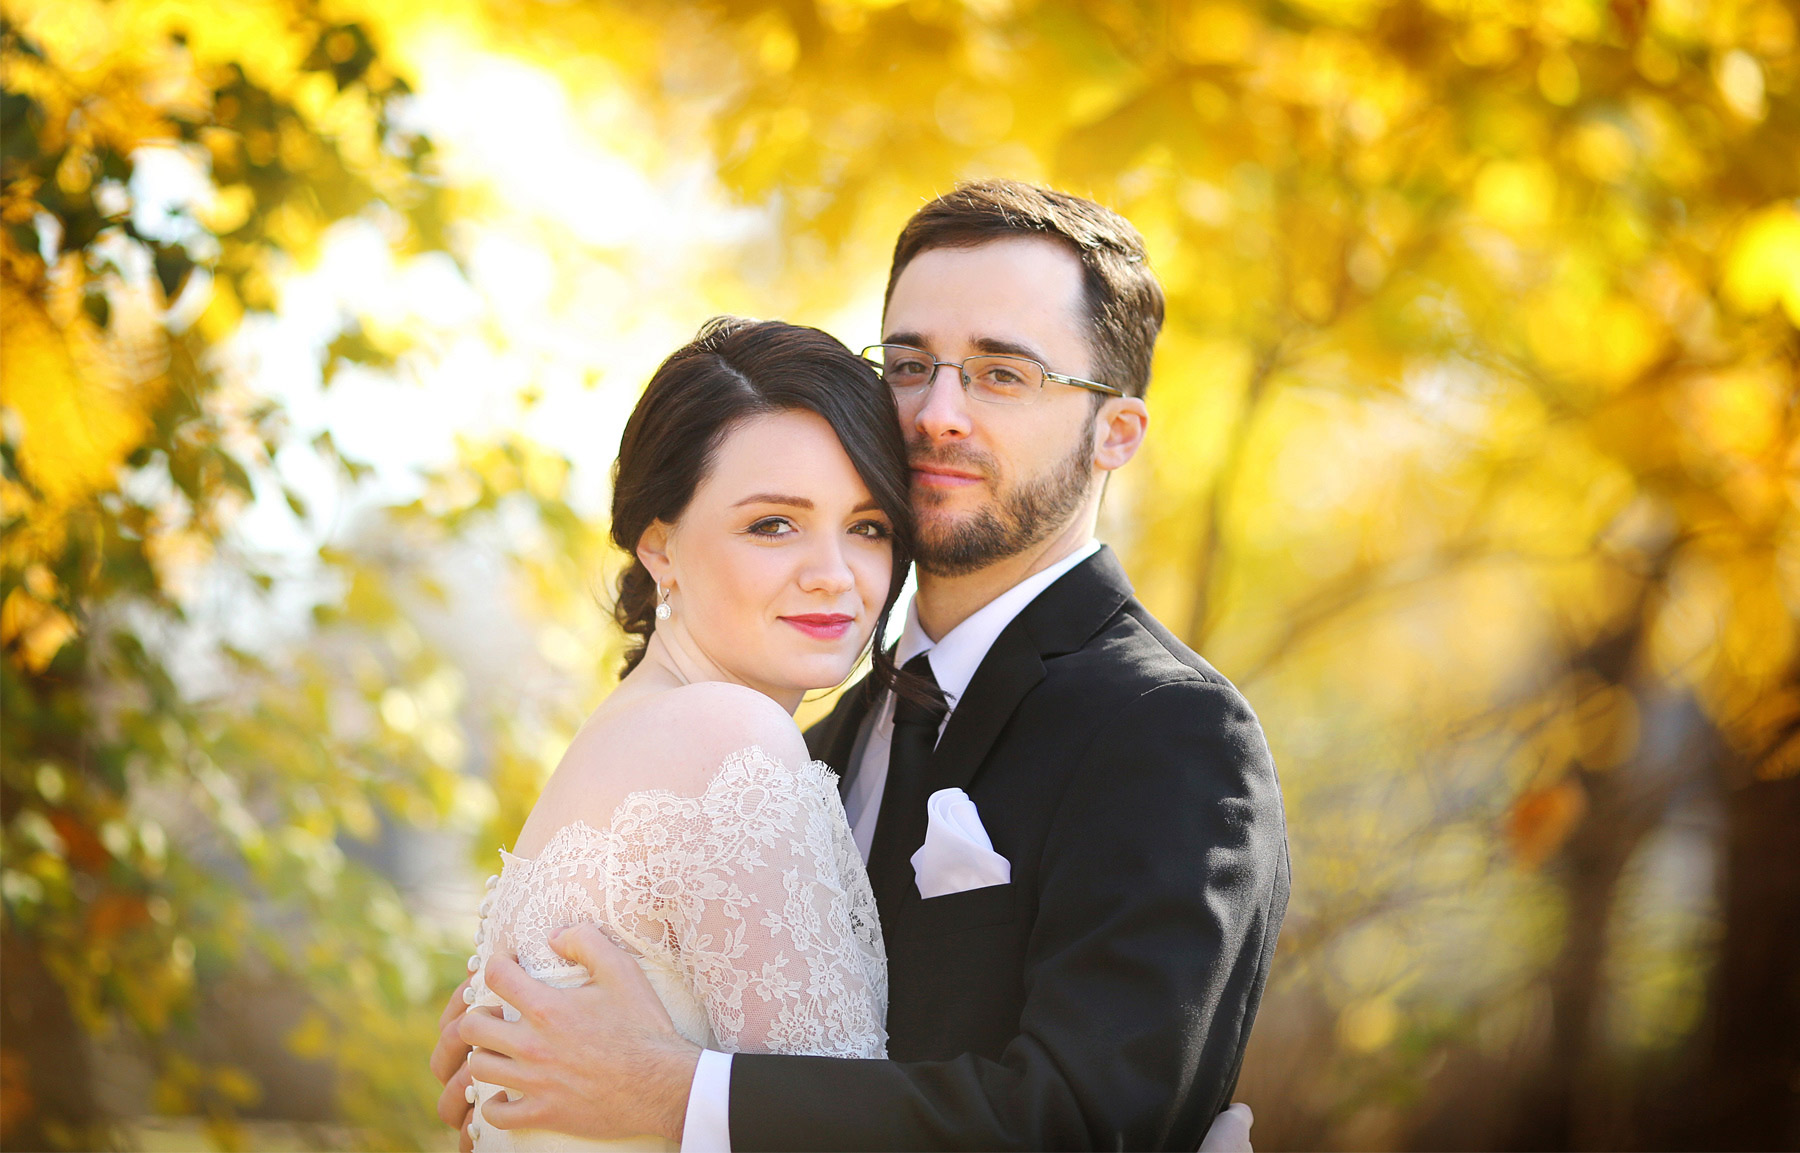 06-Minneapolis-Minnesota-Wedding-Photography-by-Vick-Photography-Fall-Colors-Autumn-Leaves-Sarah-and-Patrick.jpg